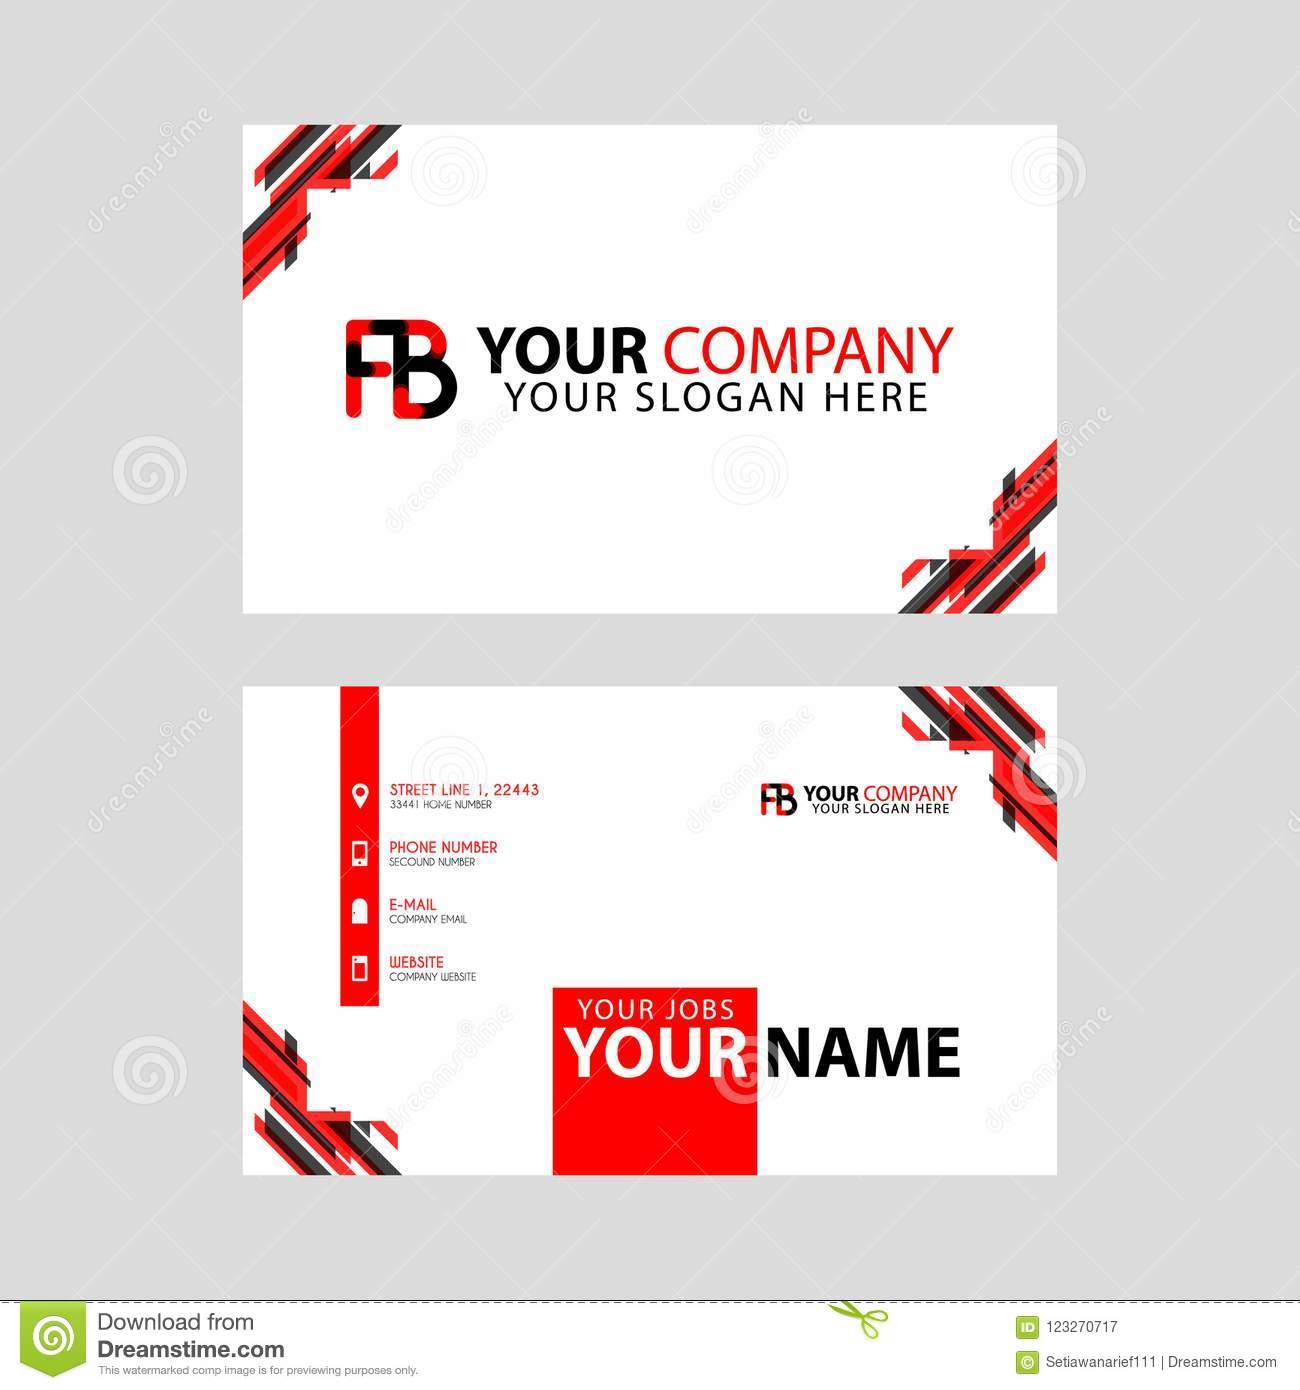 Modern Business Card Templates With Fb Logo Letter And Horizontal Design And Red And Black Colors Stock Vector Illustration Of Template Identity 123270717